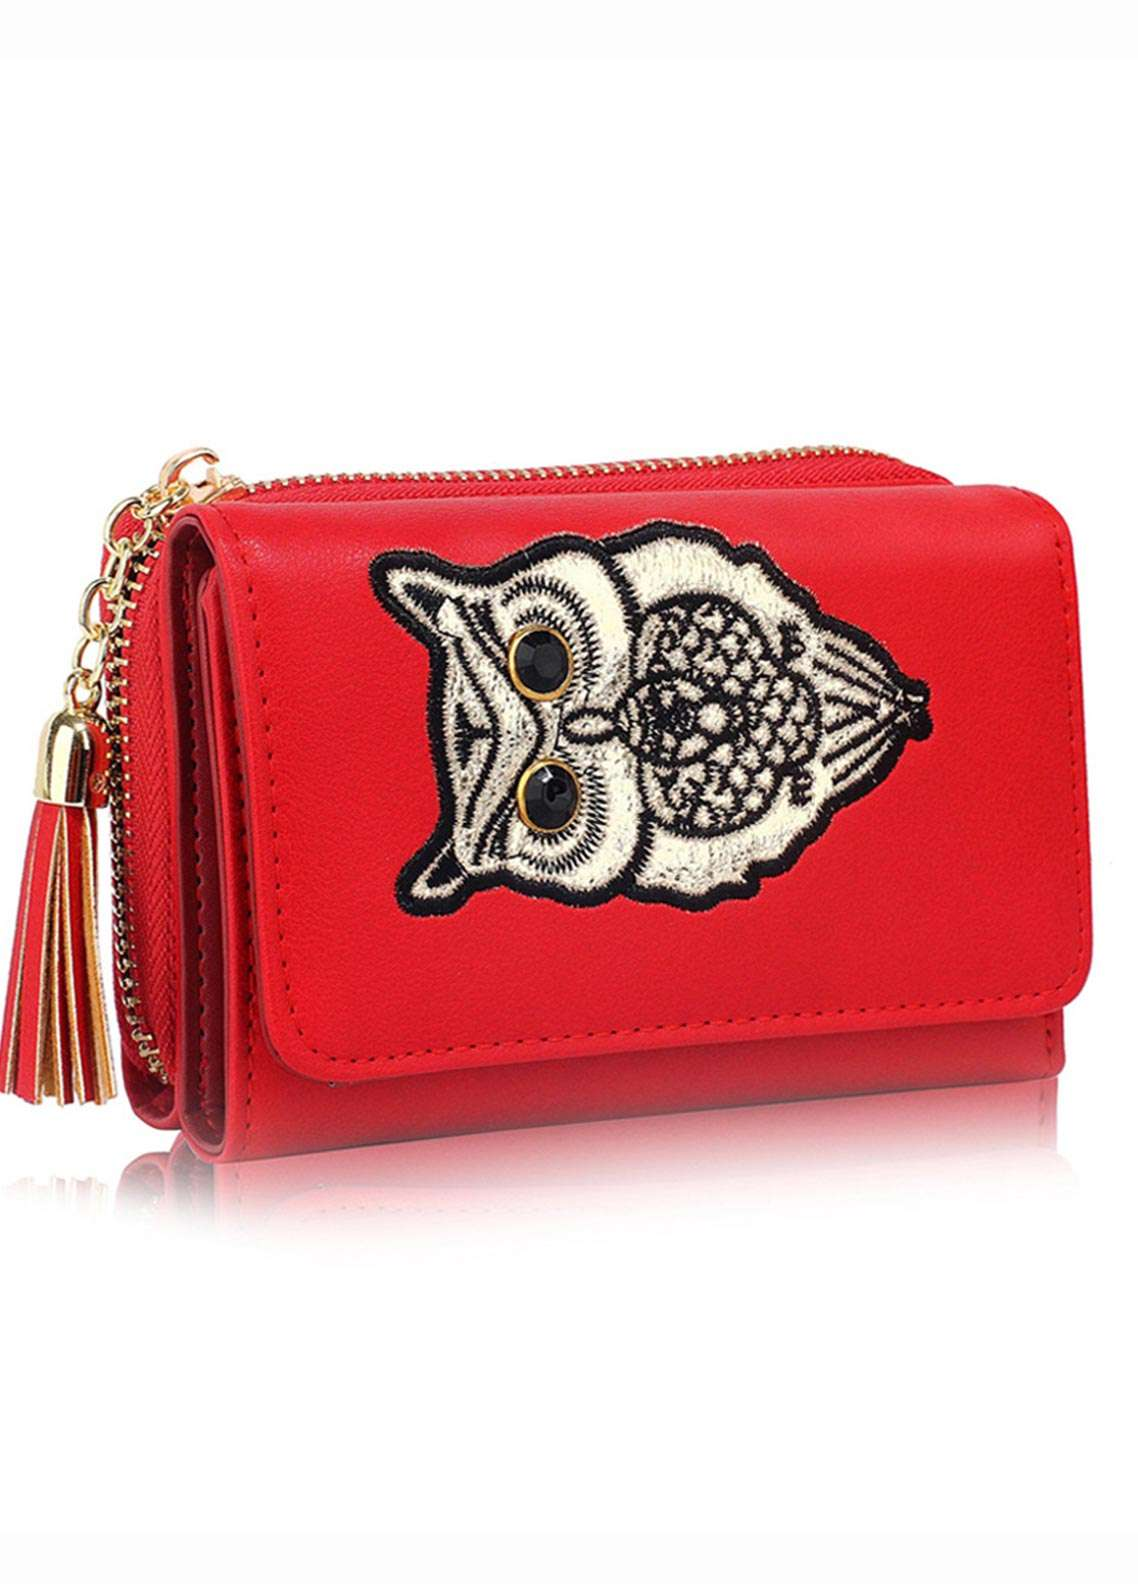 Anna Grace London Faux Leather Wallet   for Women  Red with Smooth Texture Grainy